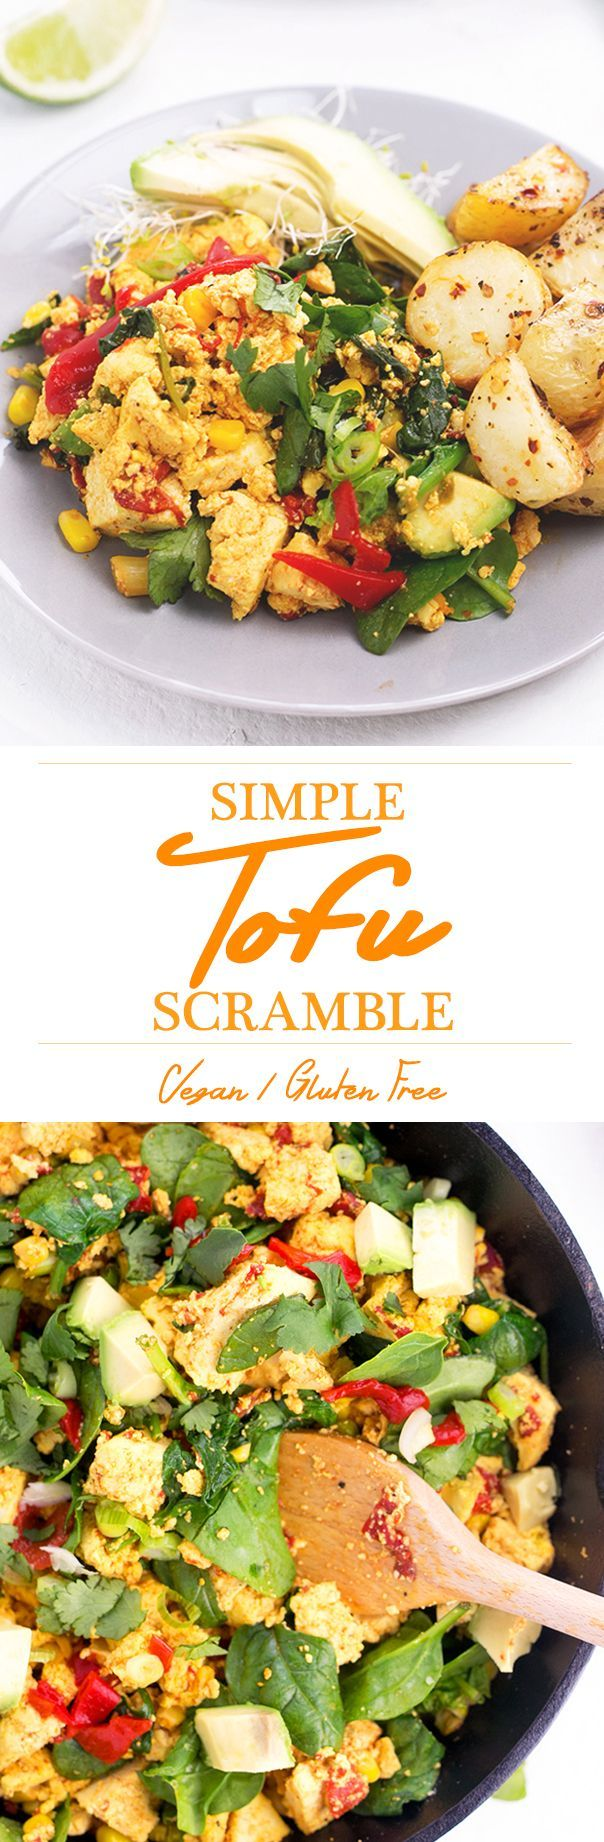 Simple Tofu Scramble - Vegan, Gluten Free, Protein Packed and simple ...